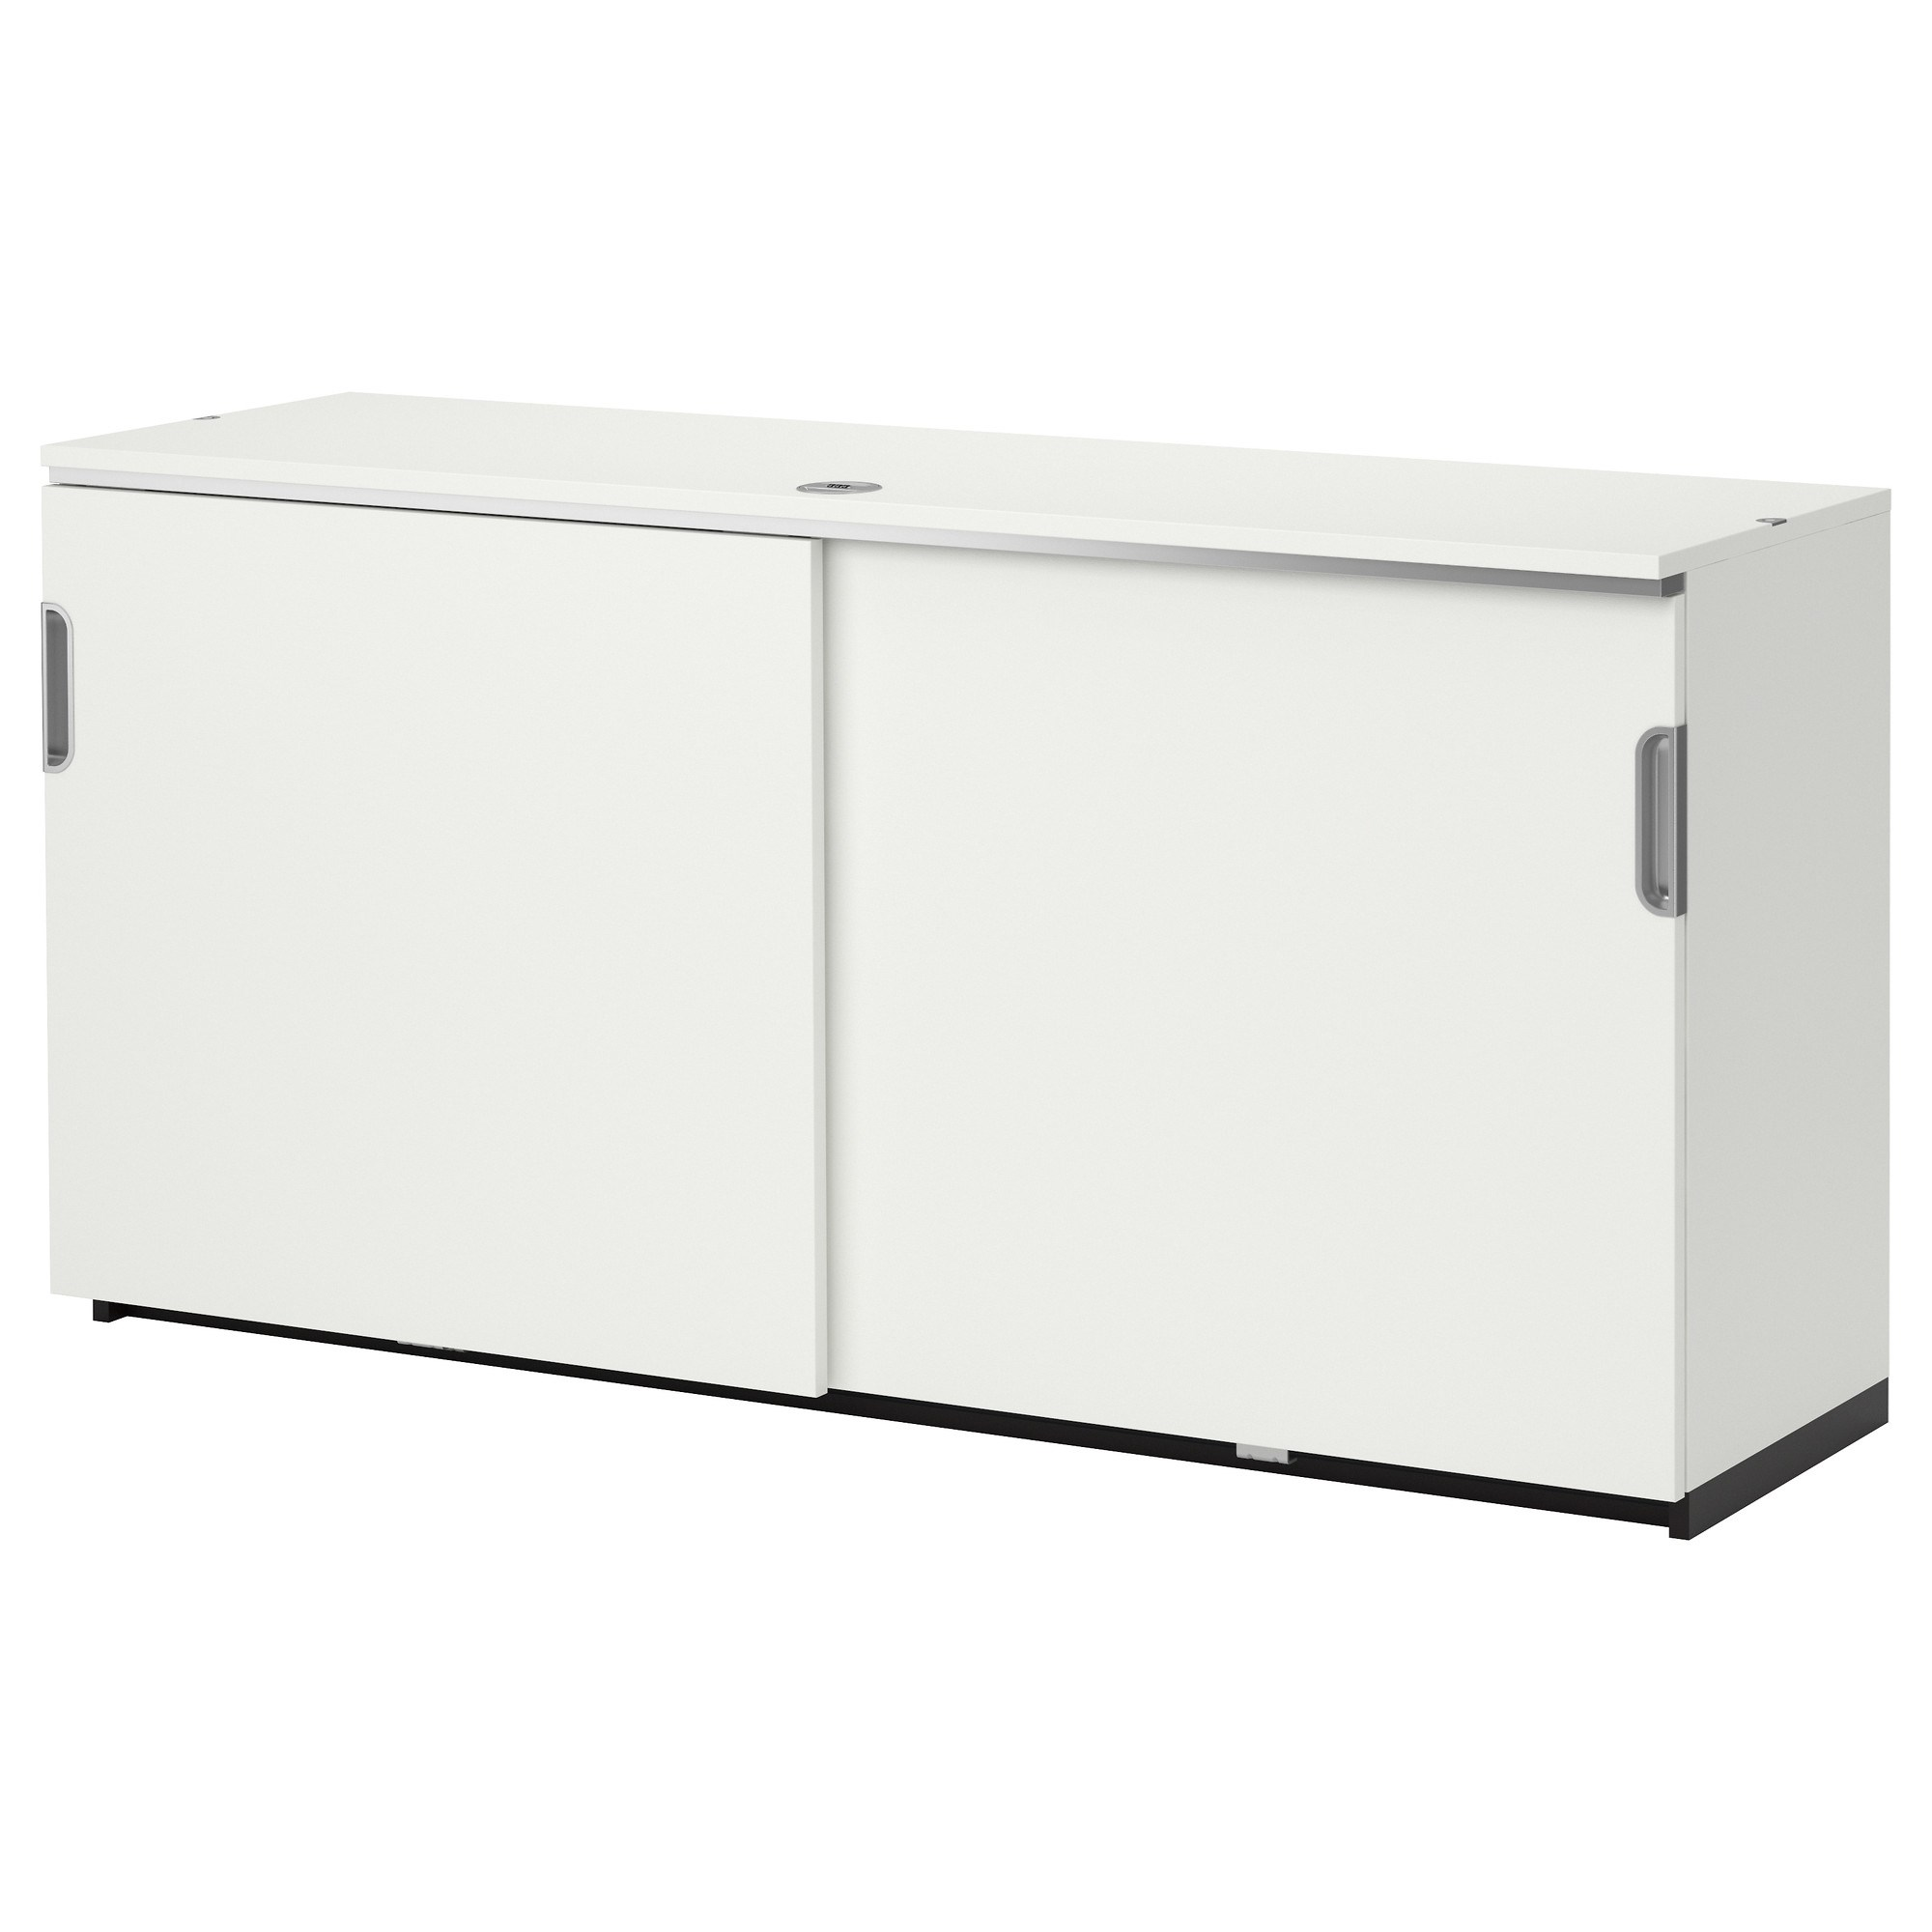 GALANT office cabinet white 160x80 cm | IKEA IKEA for your Business